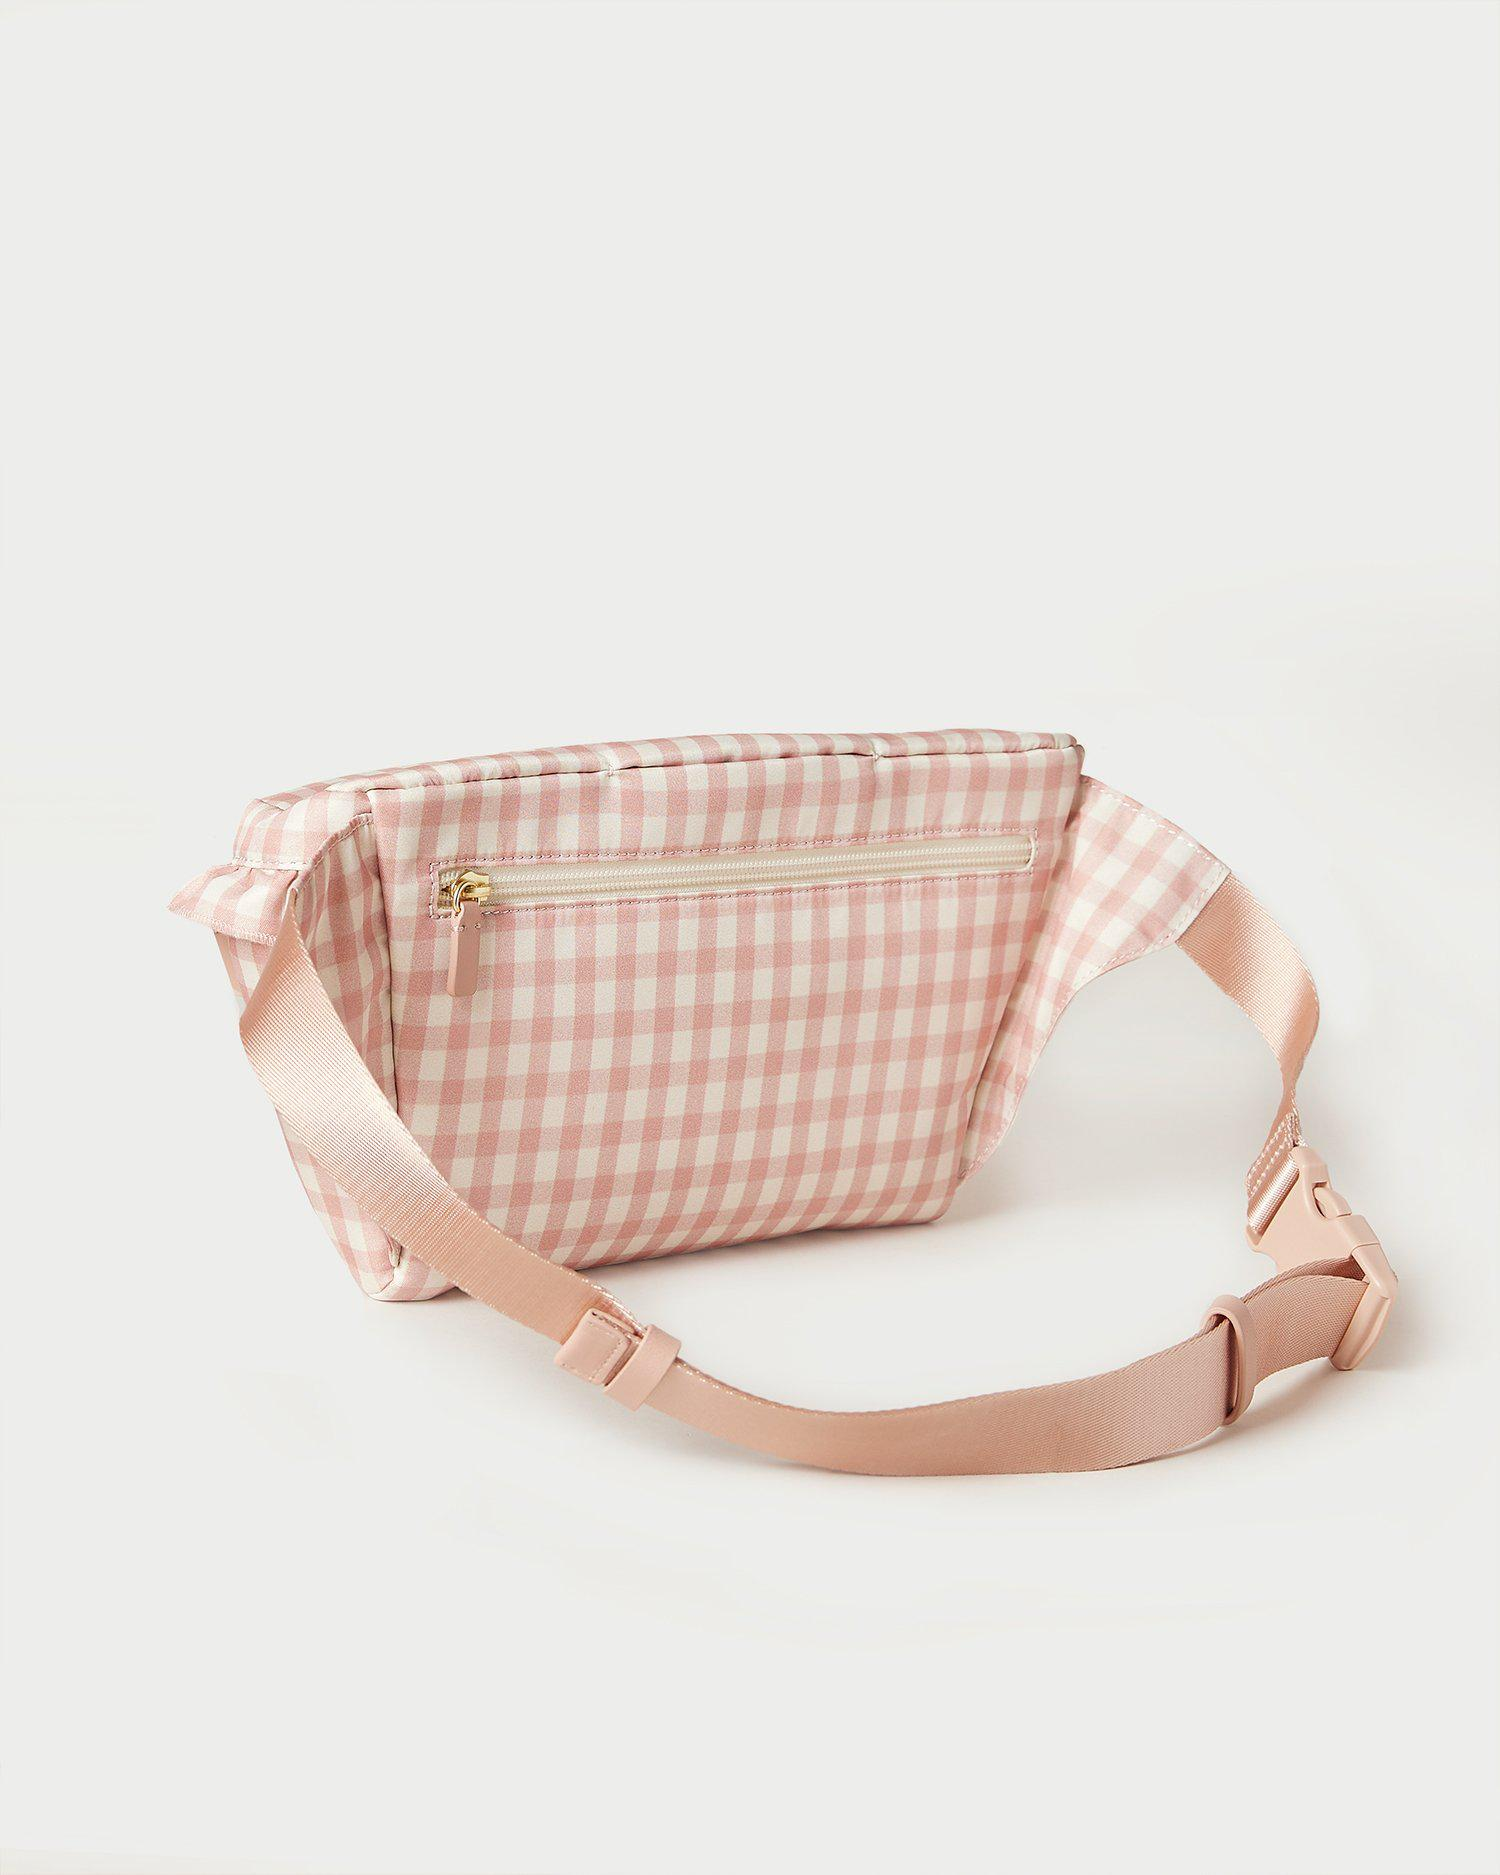 Shiloh Clay Gingham Commuter Pack 1